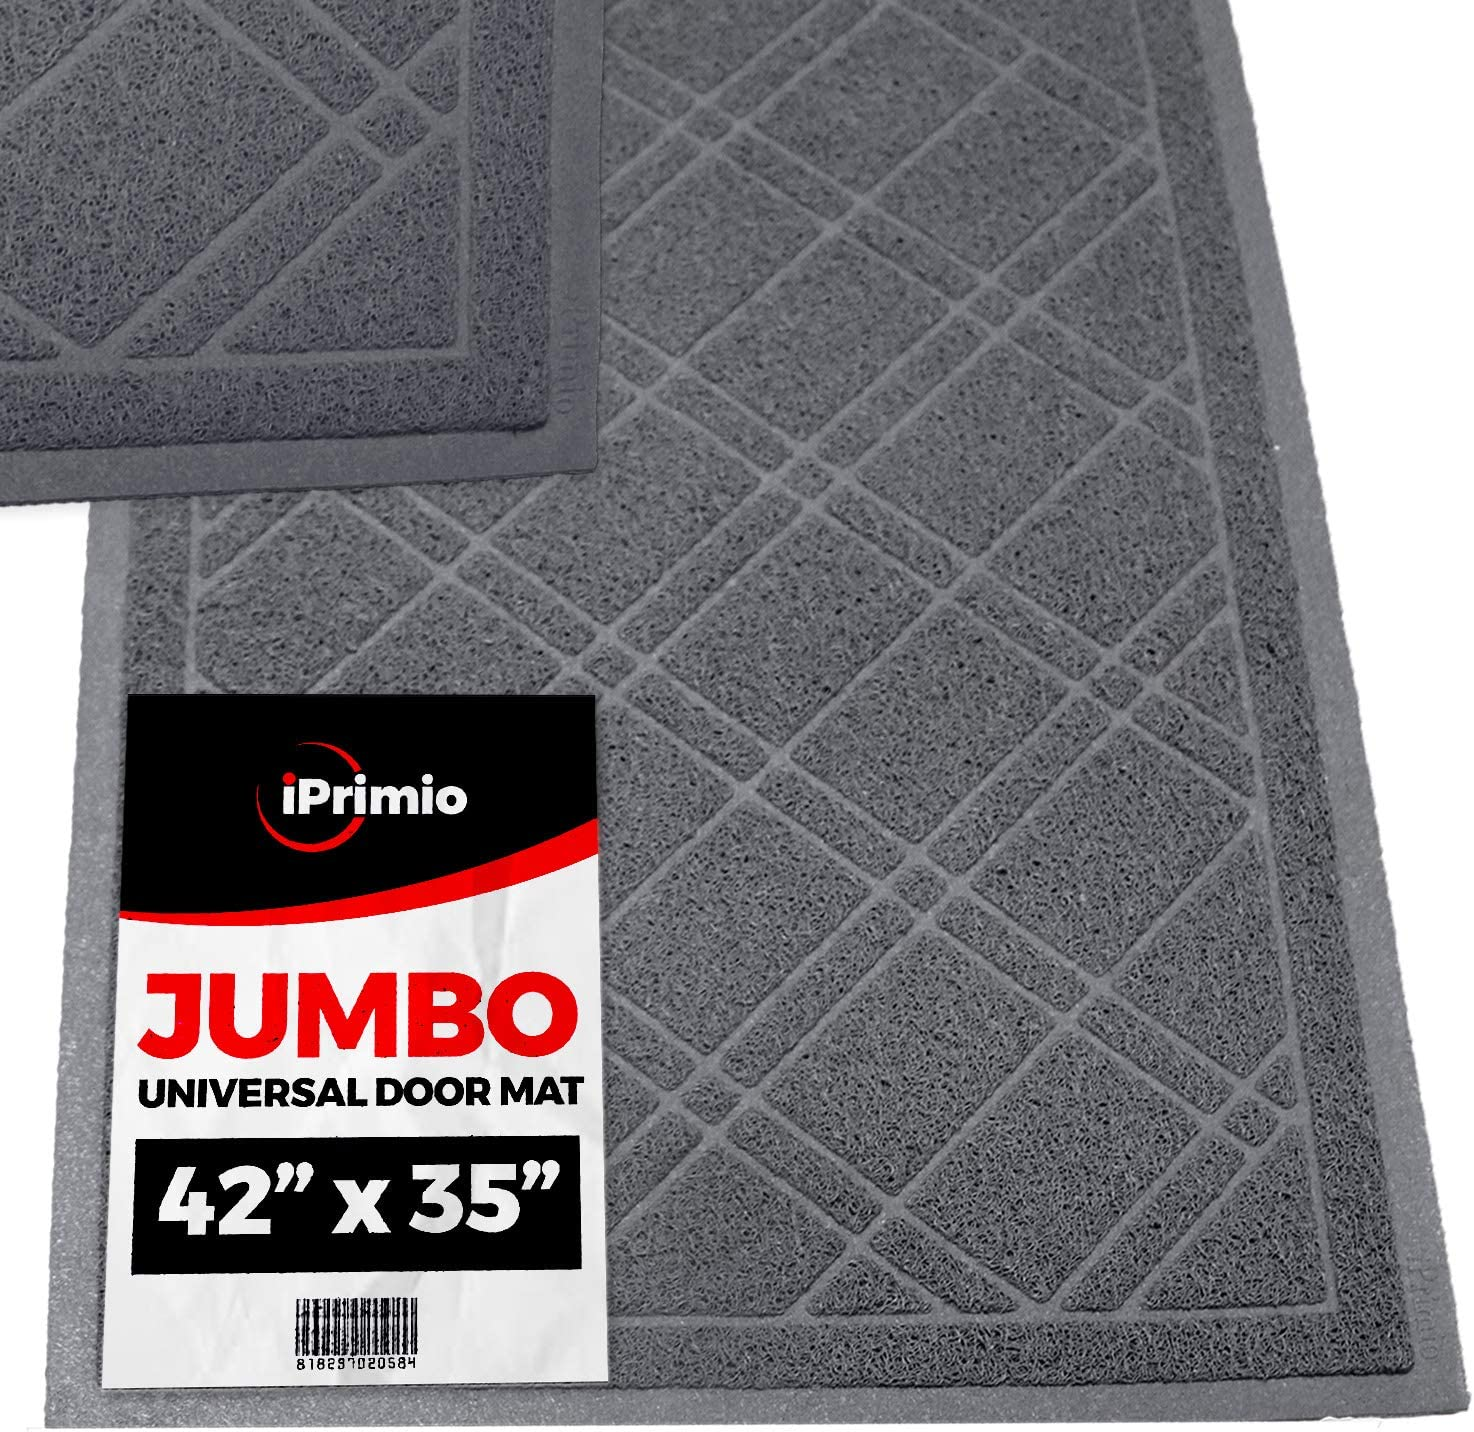 Amazon Com Sliptogrip Universal Gray Door Mat With Duraloop Jumbo 42 X35 Outdoor Indoor Entrance Doormat Waterproof Low Profile Door Mat Welcome Front Door Garage Patio Garden Outdoor